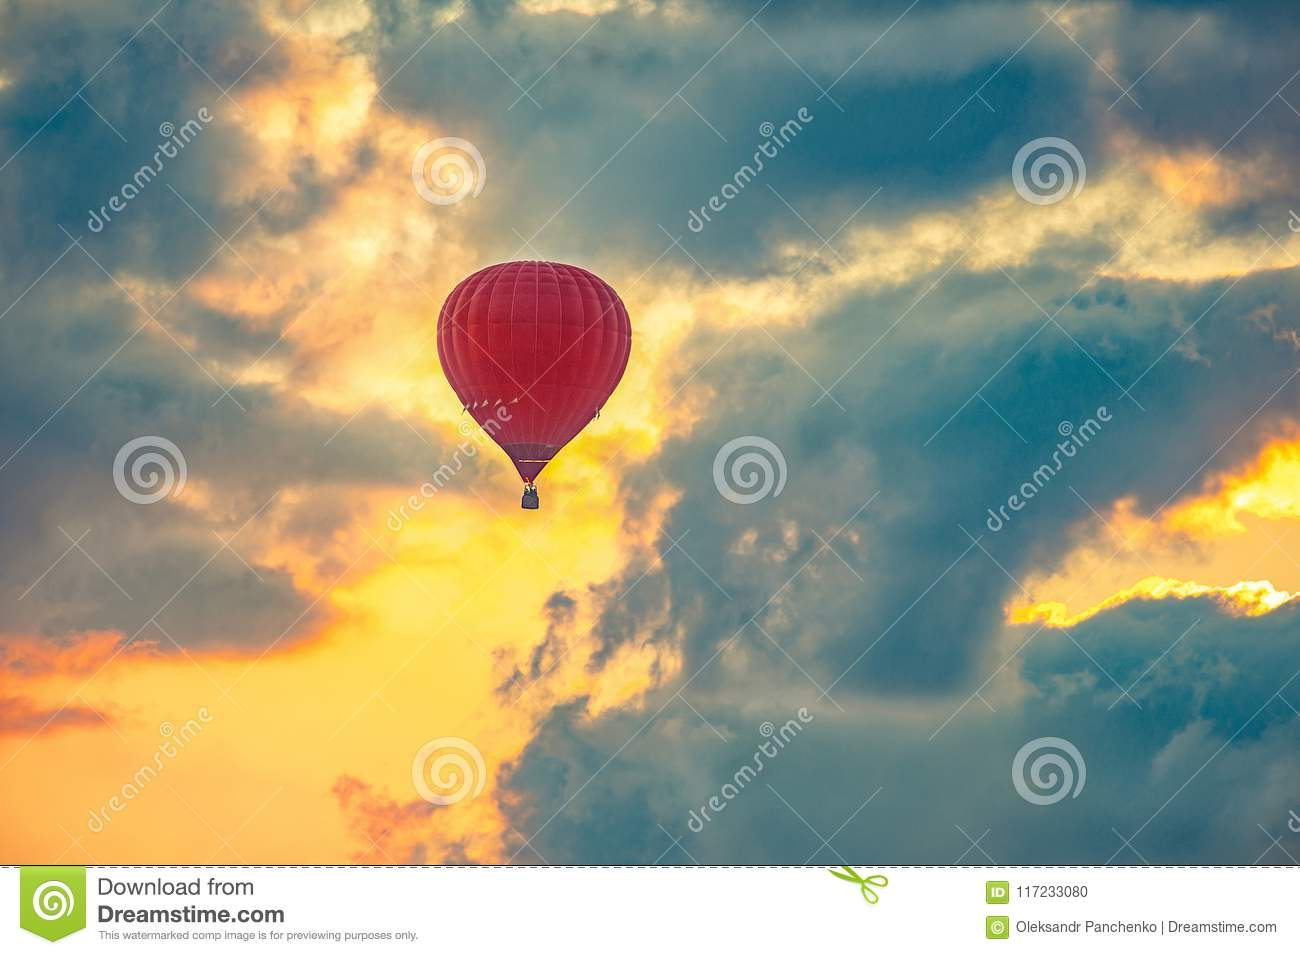 Red hot air balloon flying in beautiful sky, during sunrise.